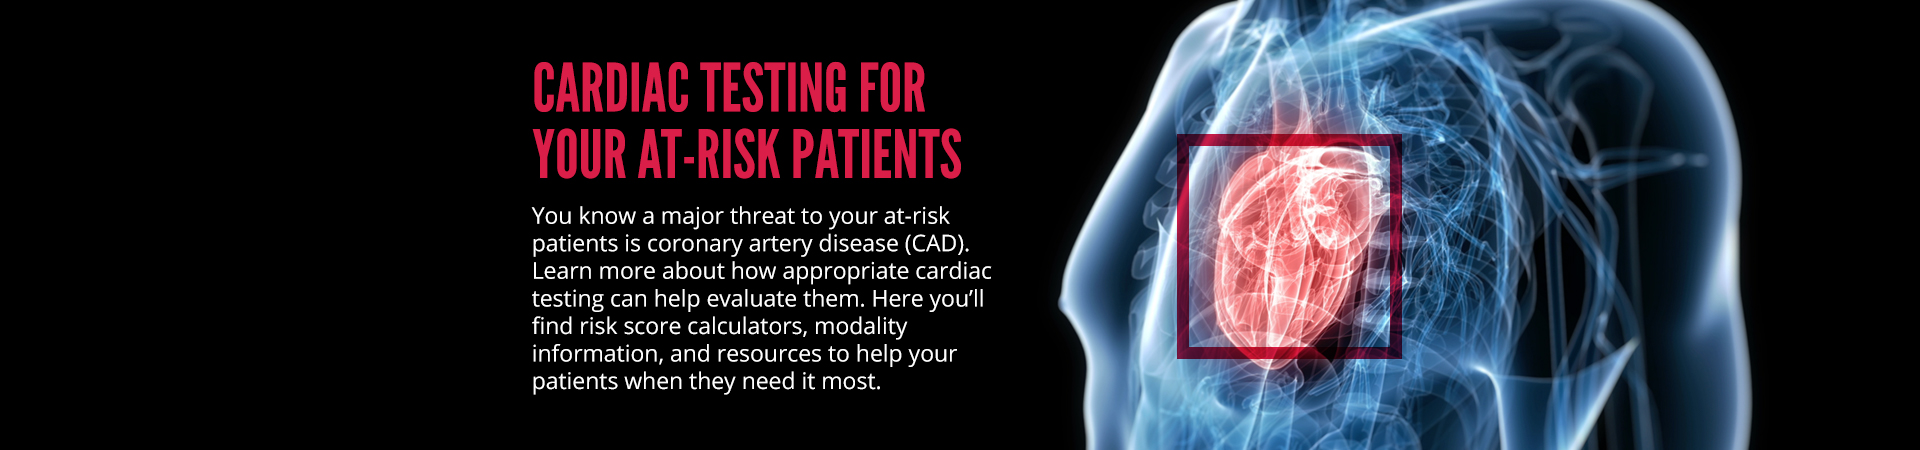 Cardiac testing for your at-risk patients. You know a major threat to your at-risk patients is coronary artery disease (CAD). Learn more about how appropriate cardiac testing can help evaluate them. Here you'll find risk score calculators, modality information, and resources to help your patients when they need it most.'